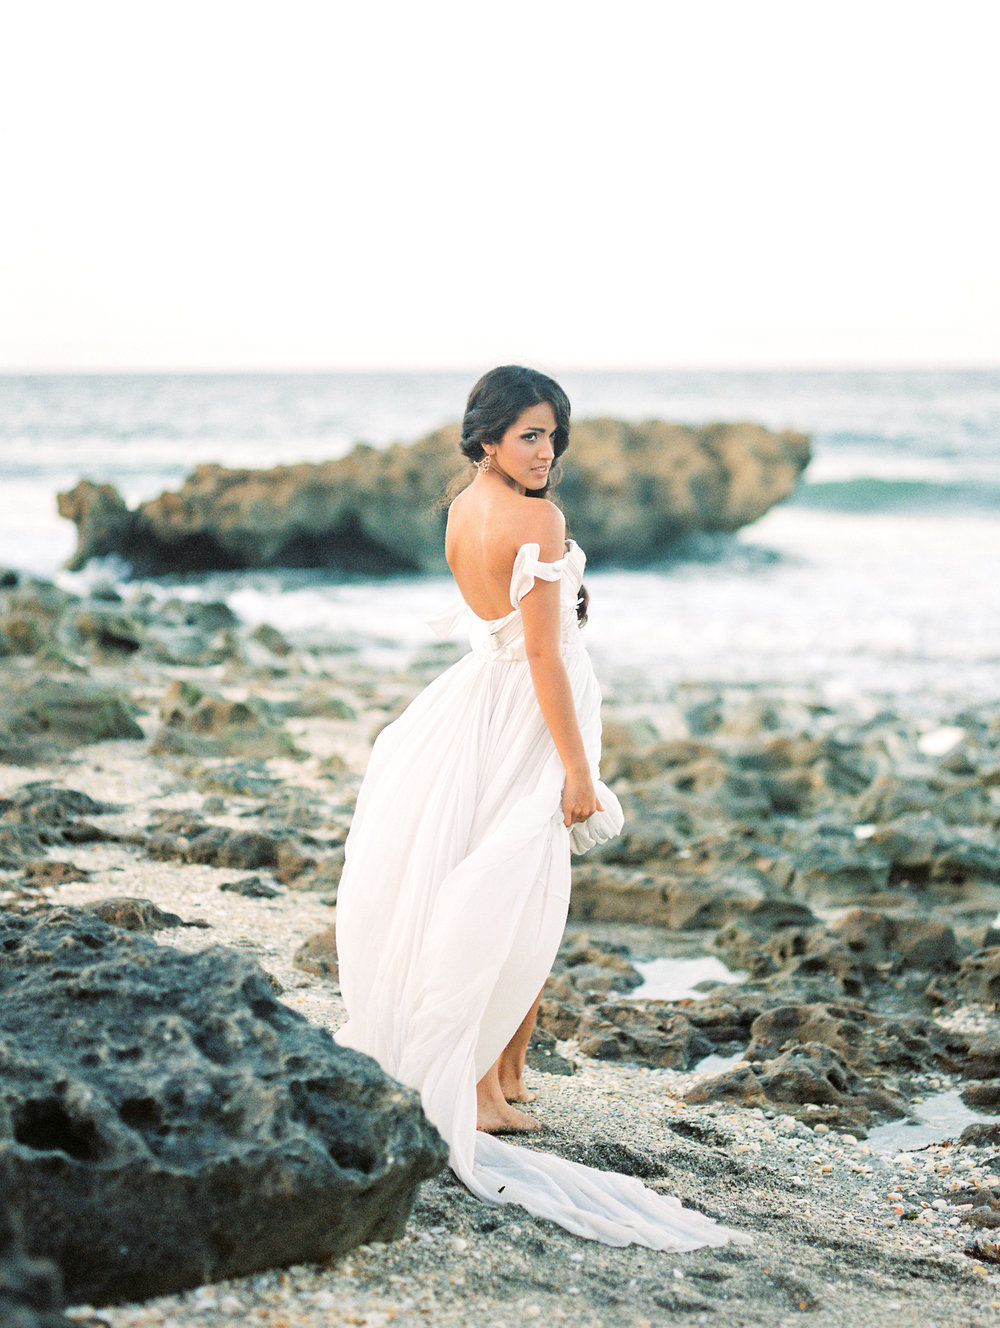 coral cove, jupiter beach FL, palm beach wedding photos, bride with flowing dress on beach